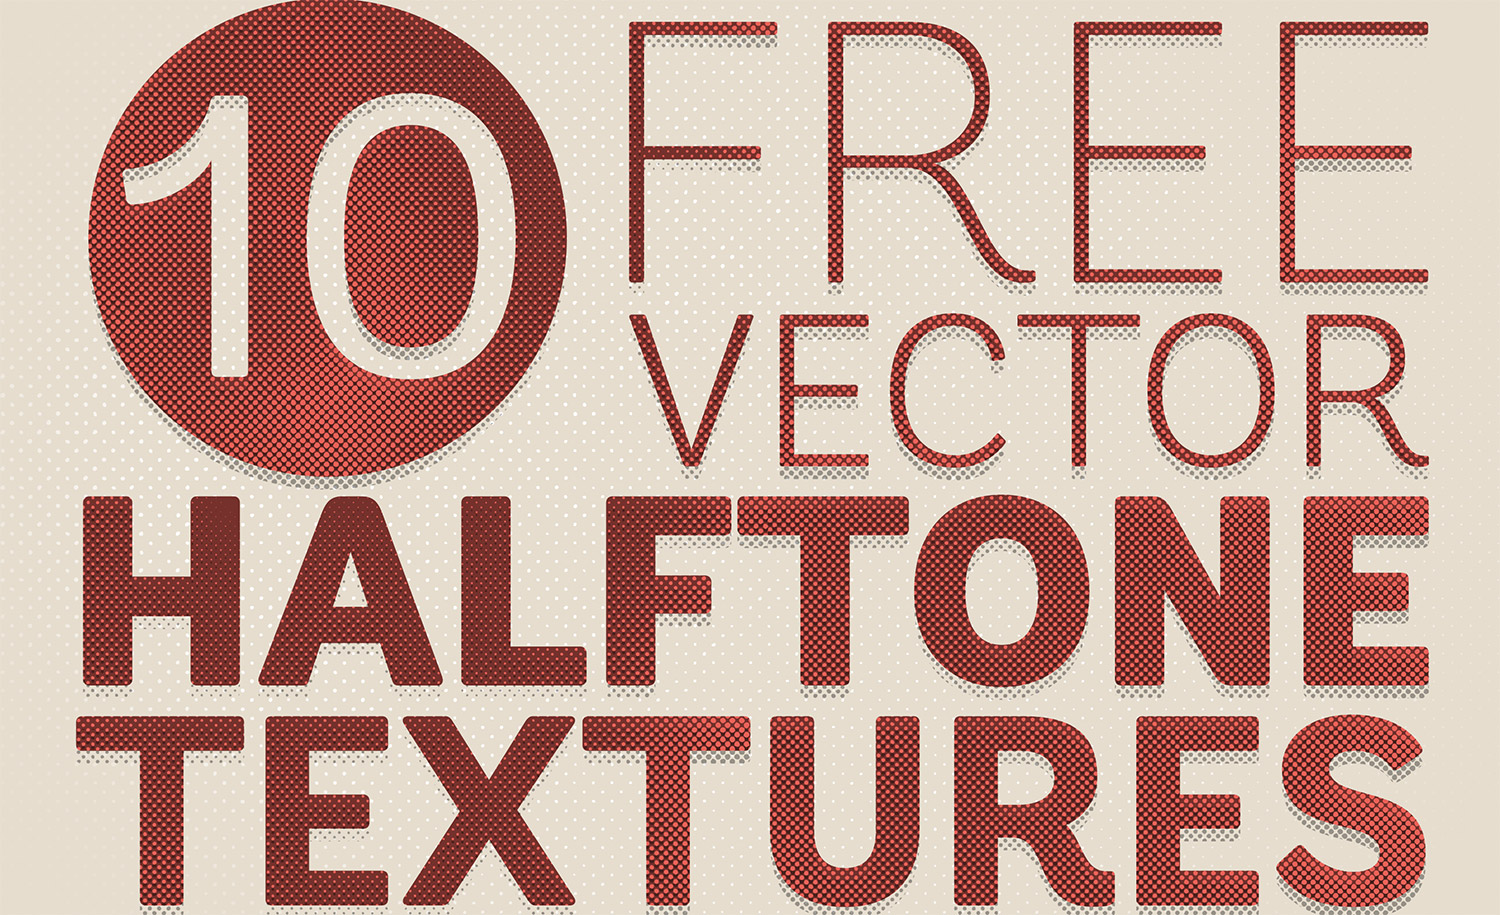 Texture clipart halftone pattern #2